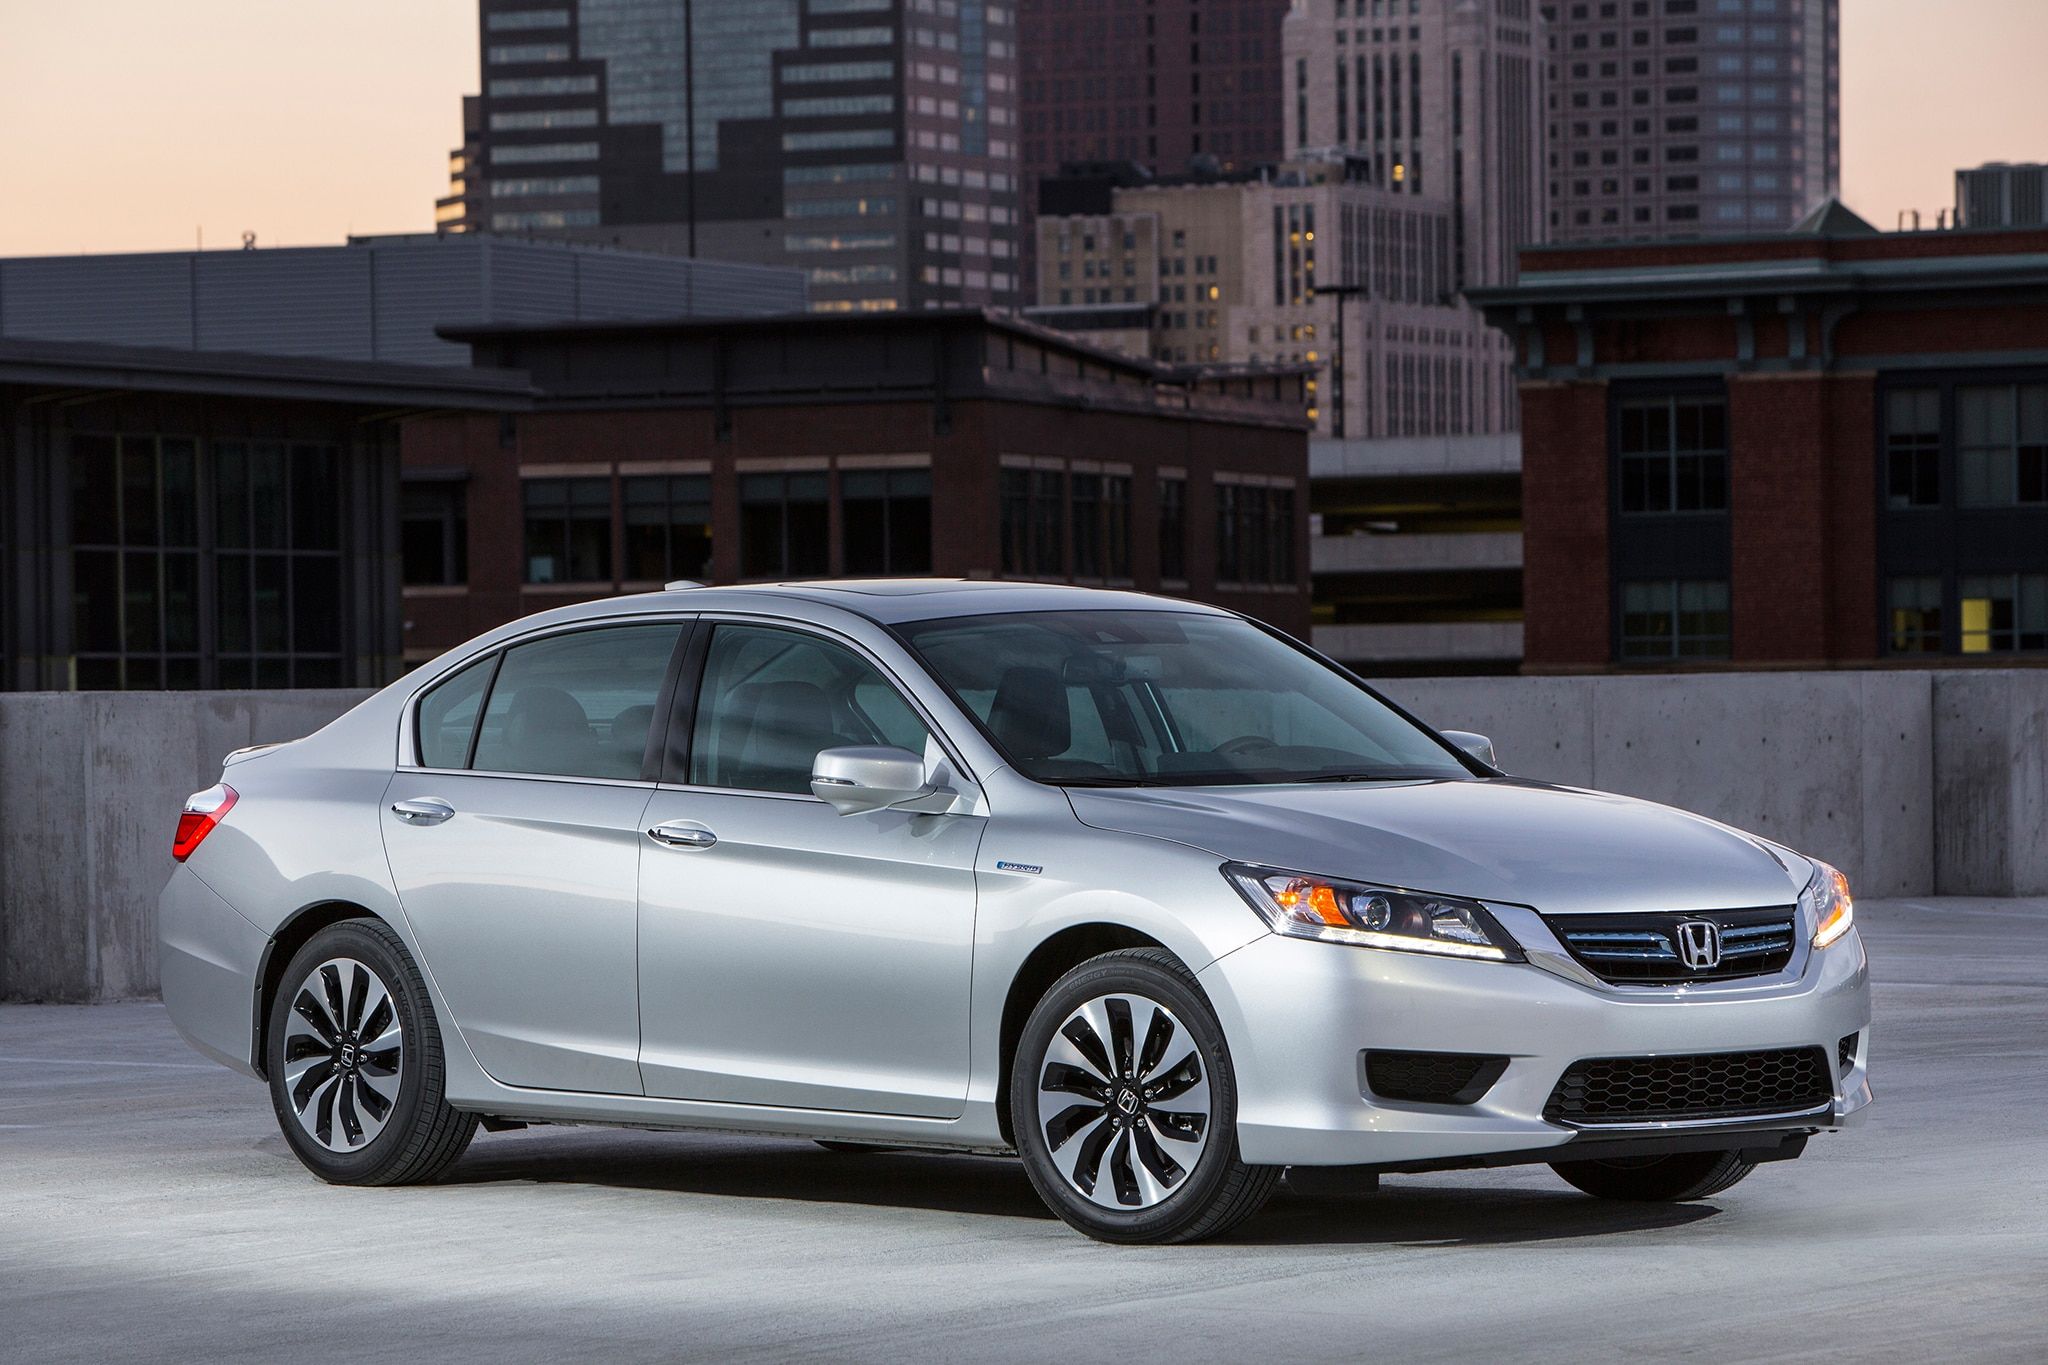 2015 honda accord hybrid 9th generation 1 automobile for Honda accord generations